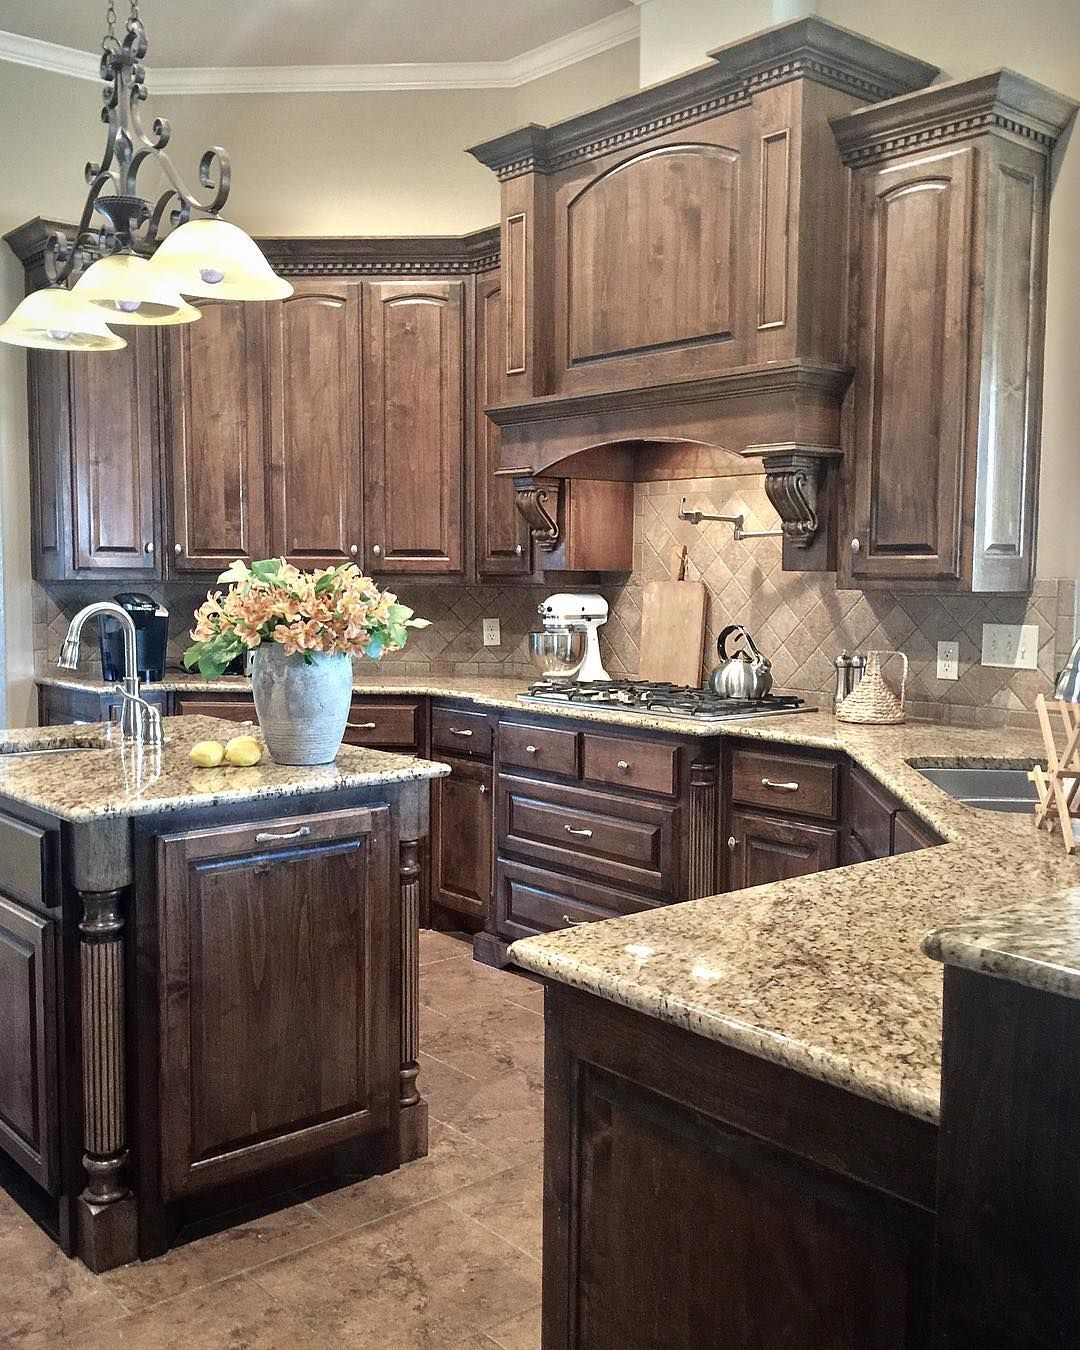 I Was Asked To Share My Kitchen Guess That I Don T So Much Because It S Not W Stained Kitchen Cabinets Tuscan Kitchen Rustic Kitchen Cabinets